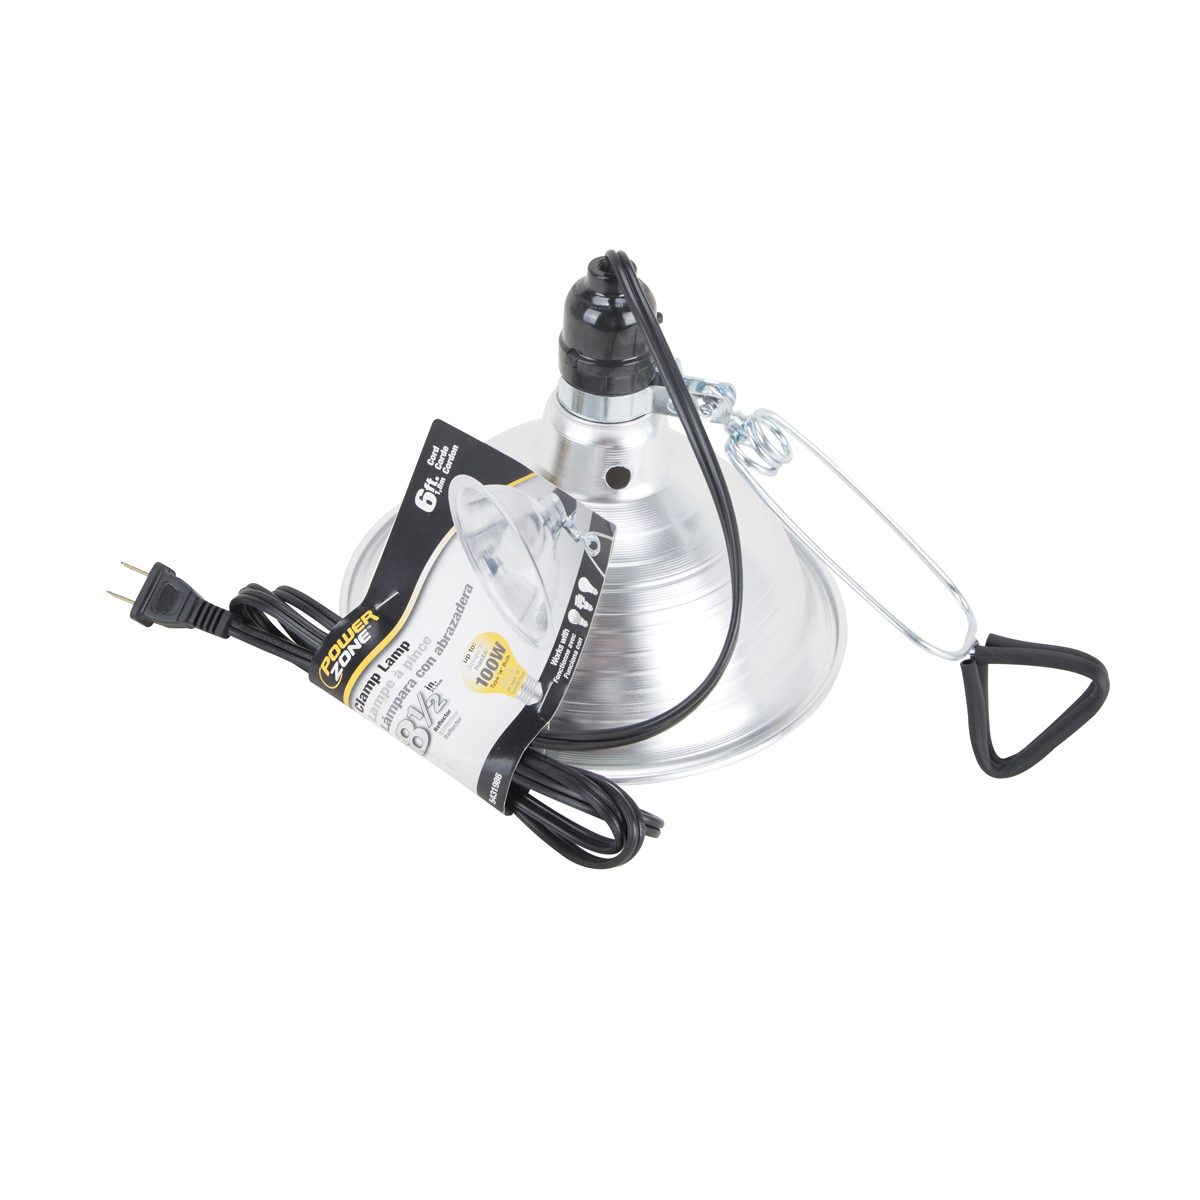 Picture of Powerzone ORBL081508 Brooder Clamp Light, Incandescent Lamp, Silver